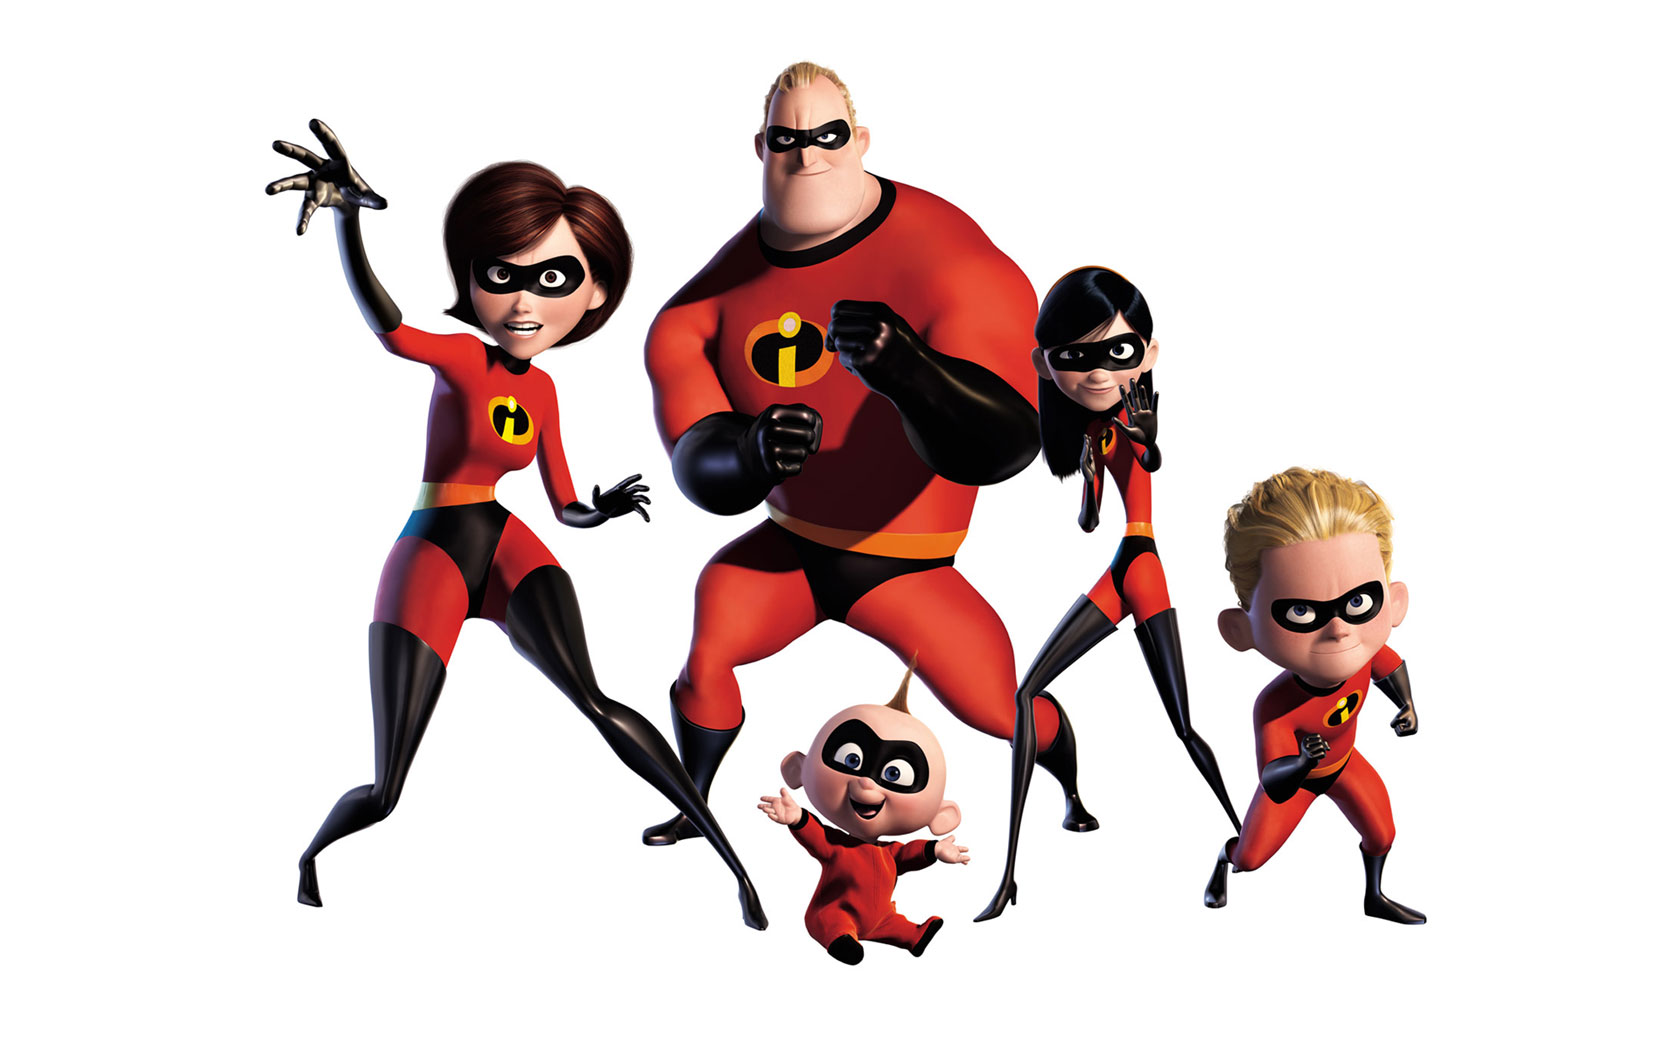 Incredibles Cartoon Family Images Photo Wallpapers - 1680x1050 ...